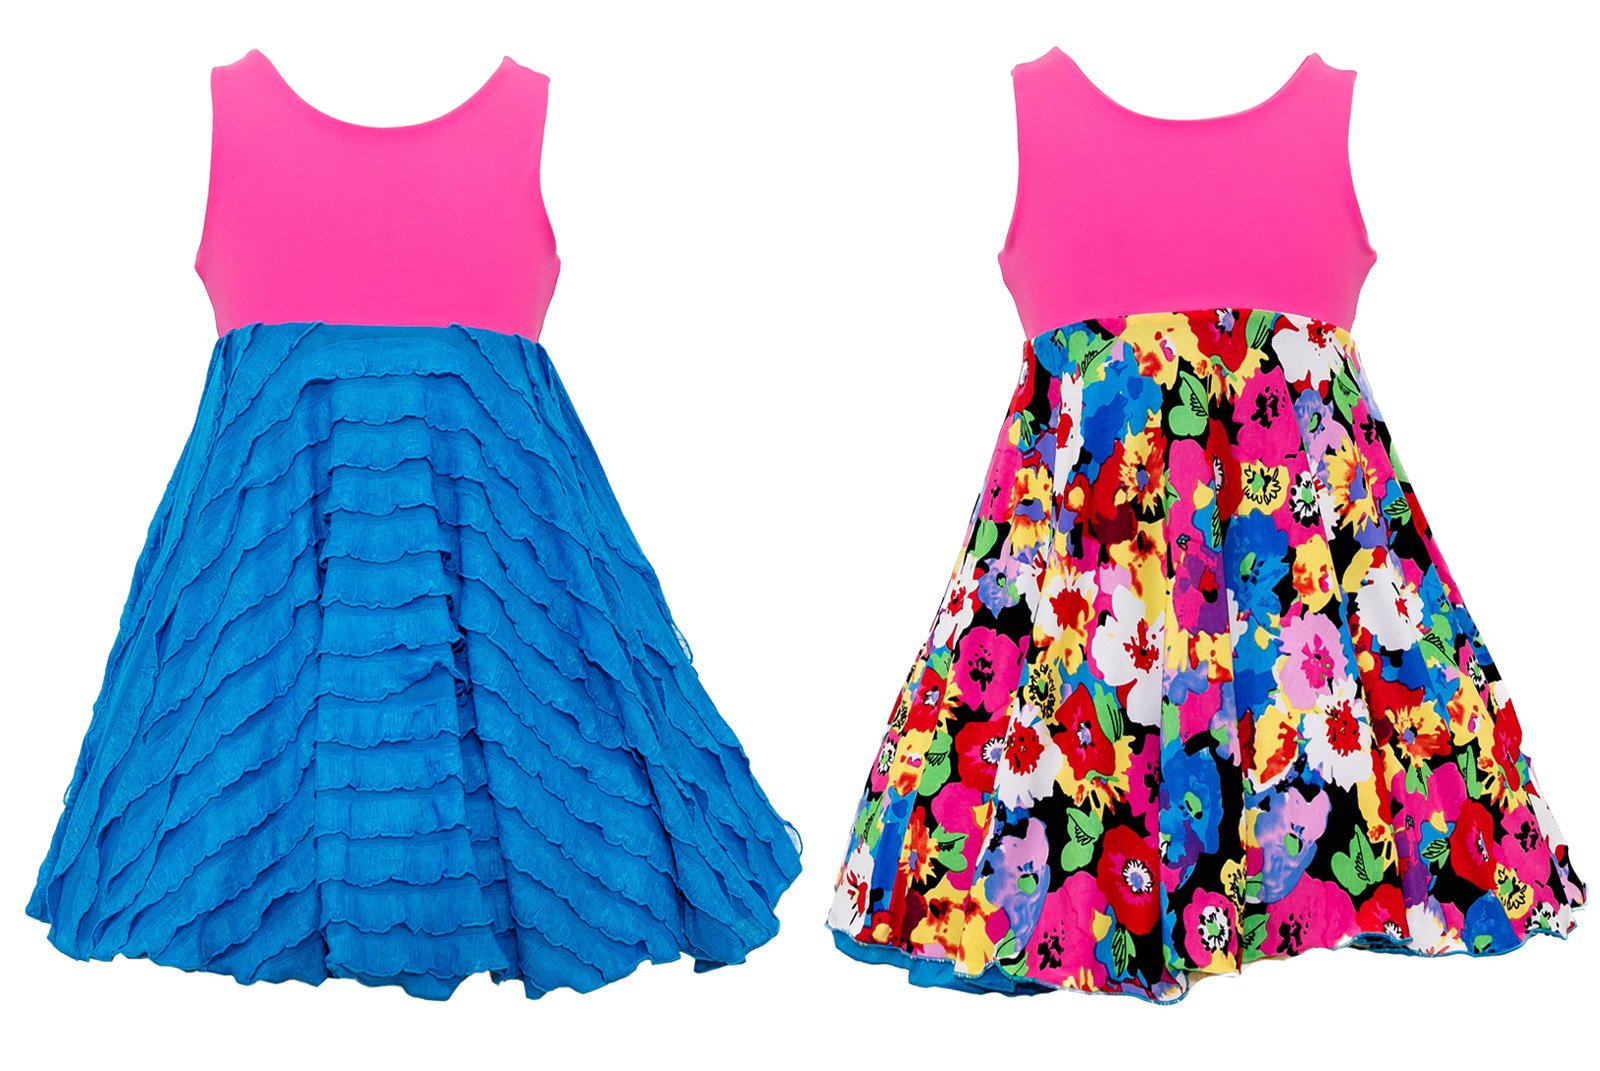 Spinning Tales SpinDay Spin Dress - Reversible (10)